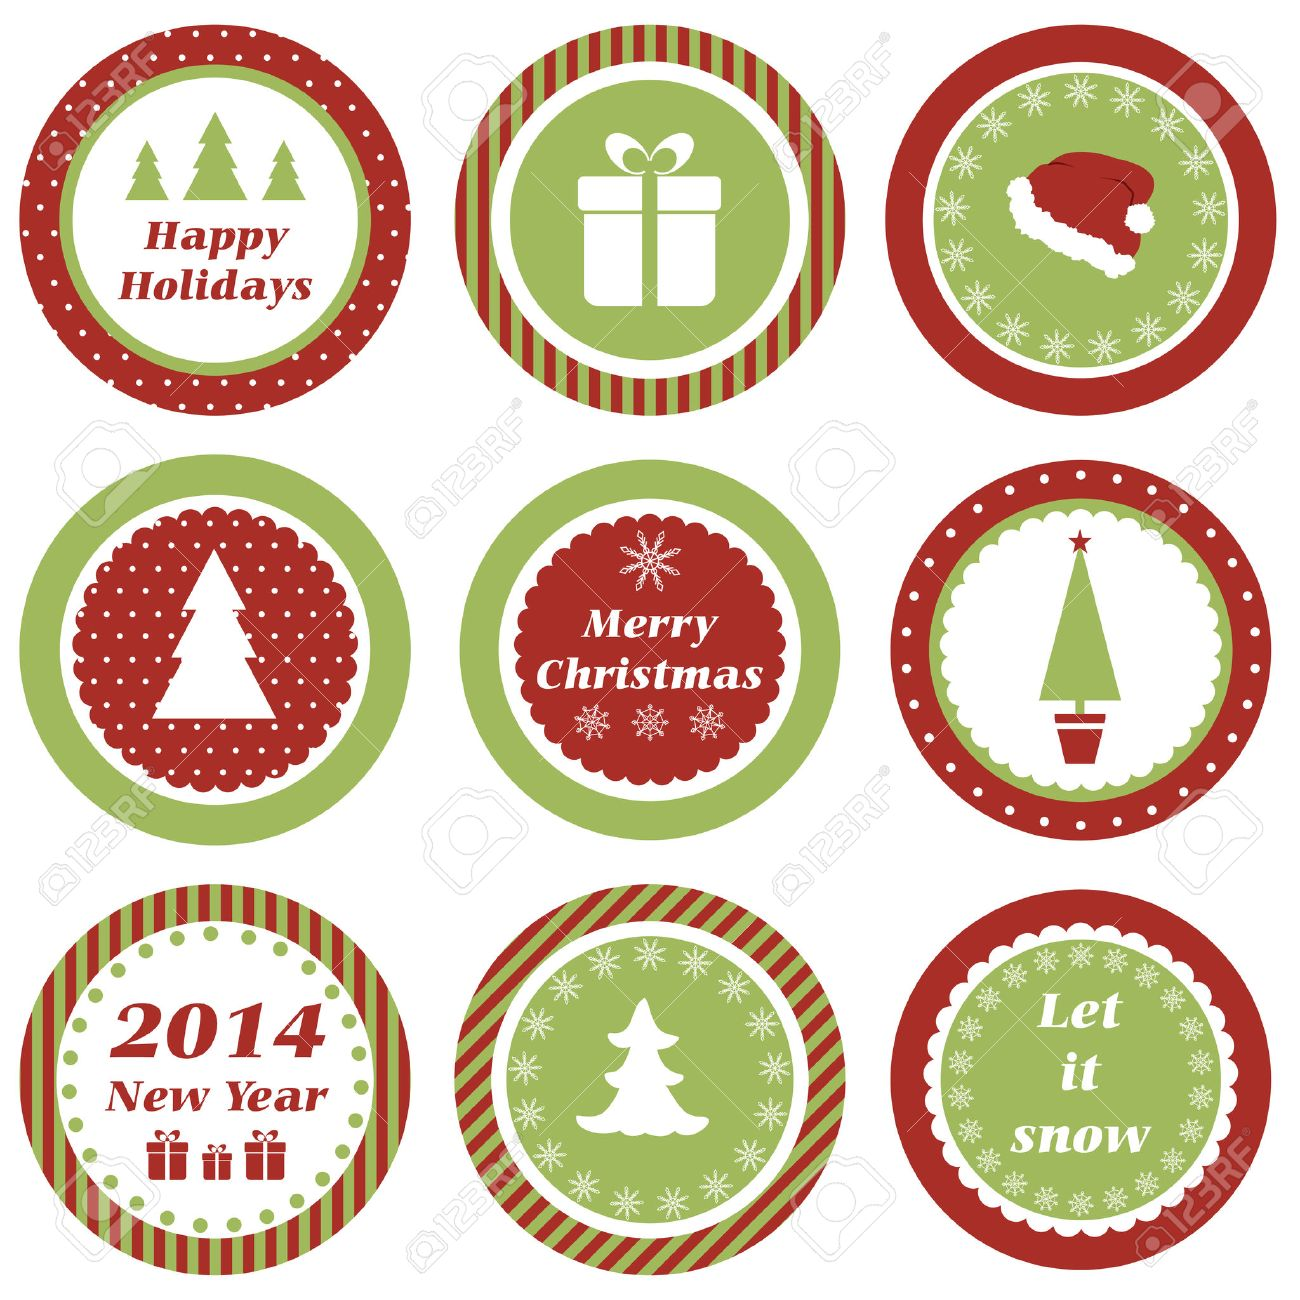 Christmas Cupcake Toppers.Cupcake Toppers For Christmas And New Year